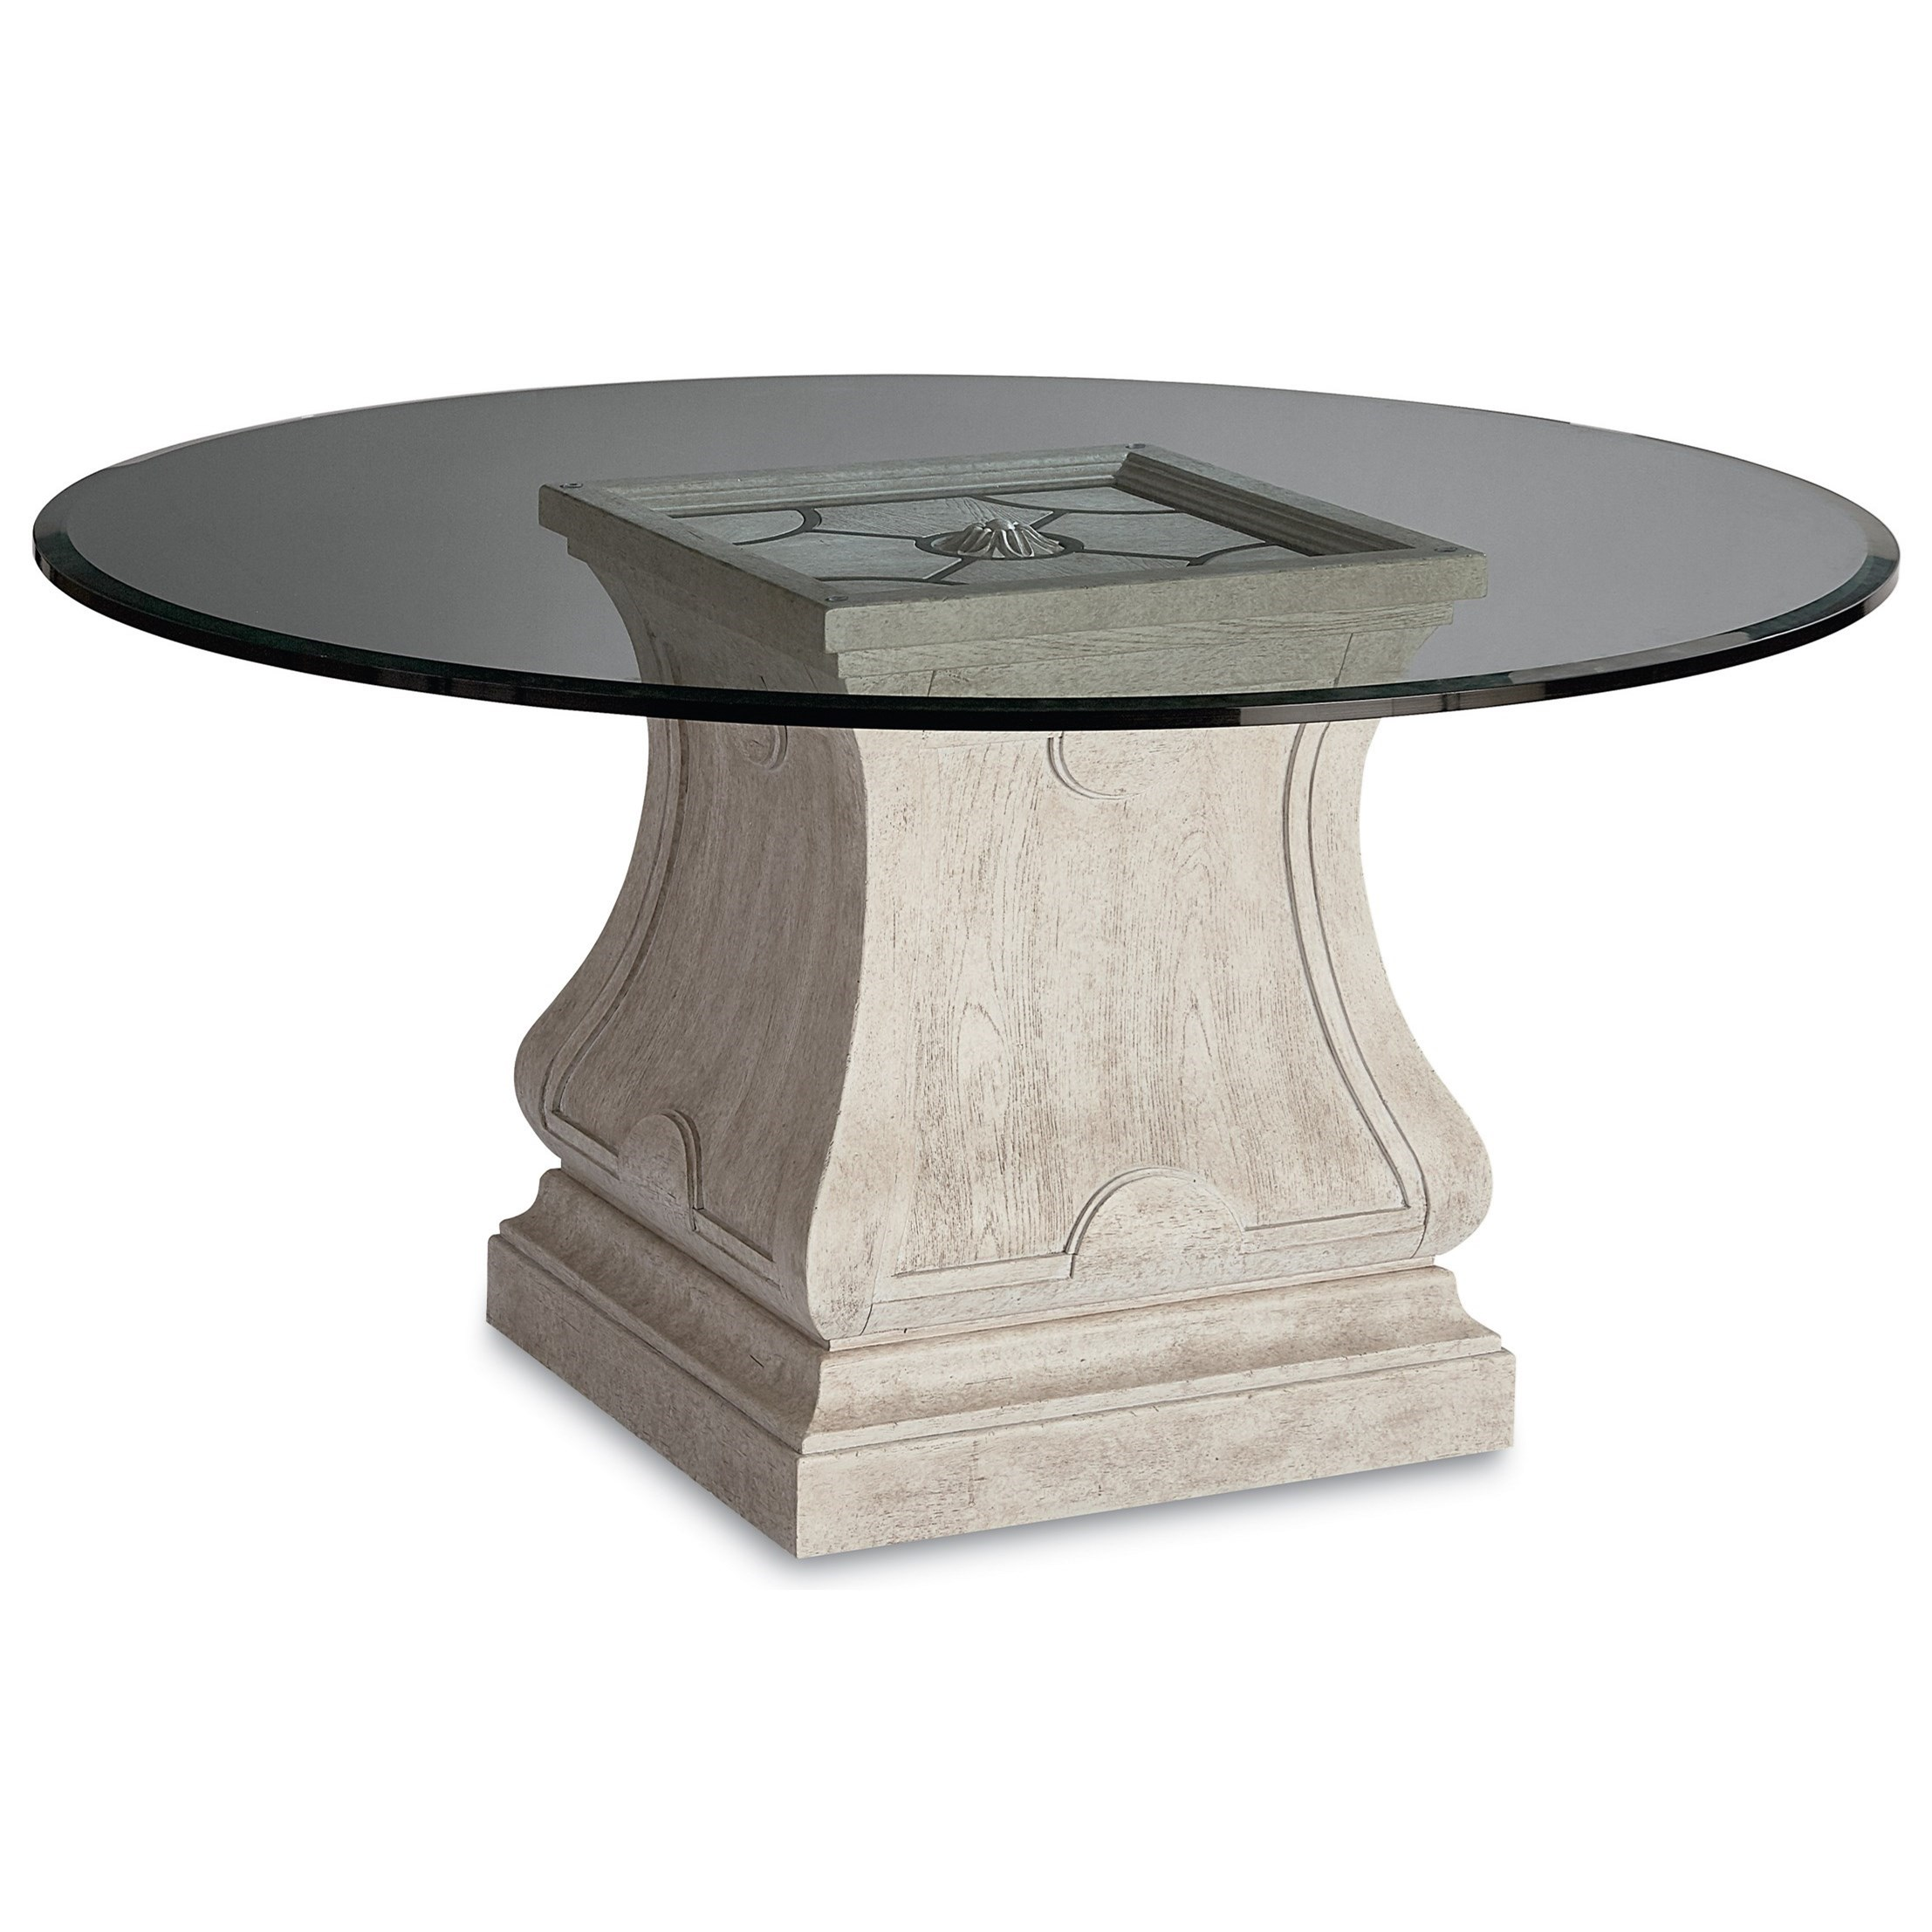 """Arch Salvage Leoni Round Dining Table with 60"""" Glass Top by A.R.T. Furniture Inc at Baer's Furniture"""